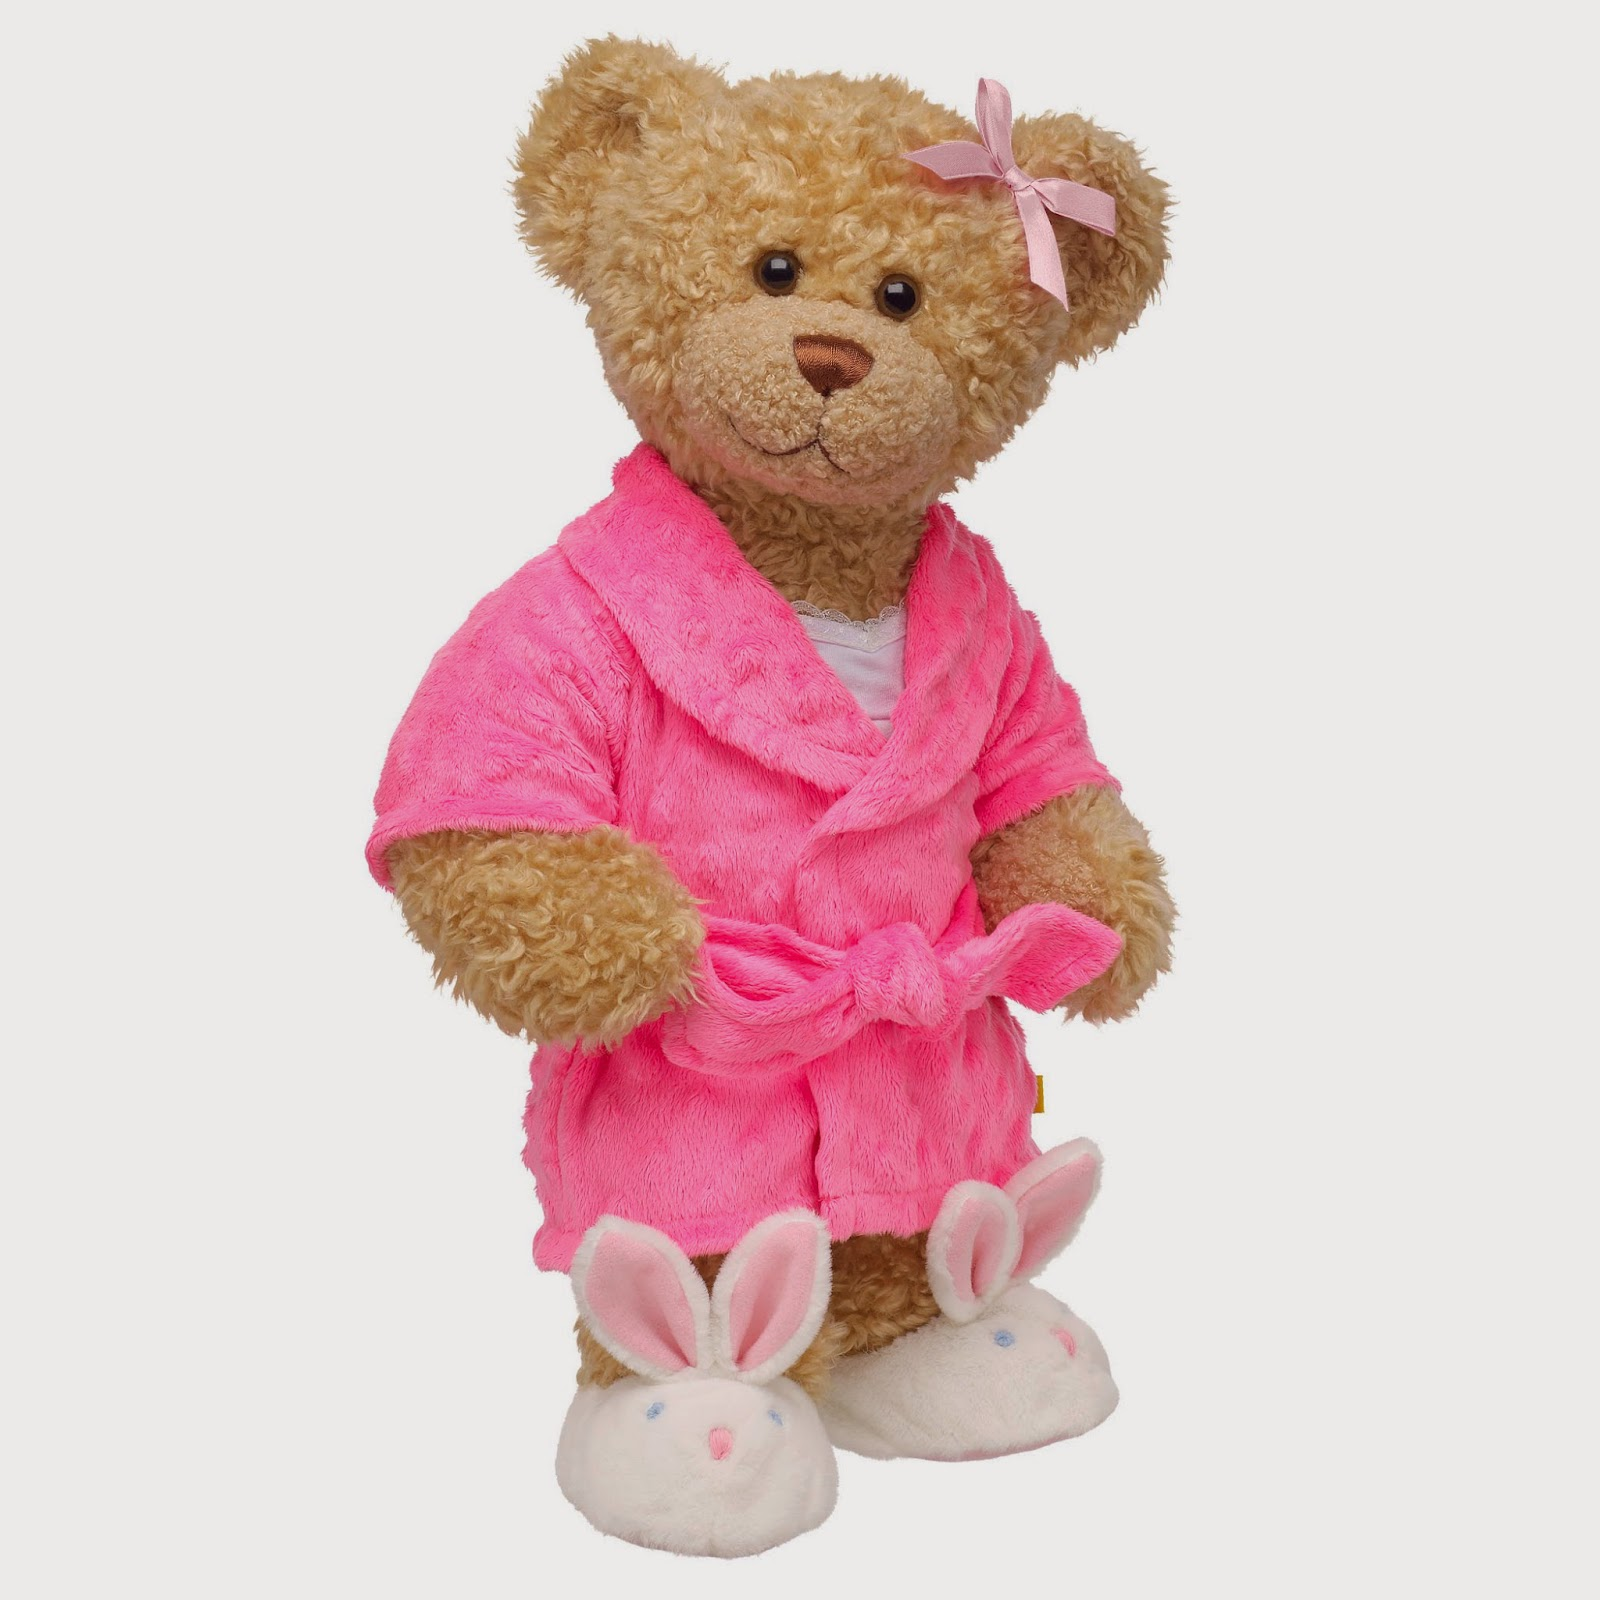 Mothers Day, Build-a-Bear Shop, Teddies for mums